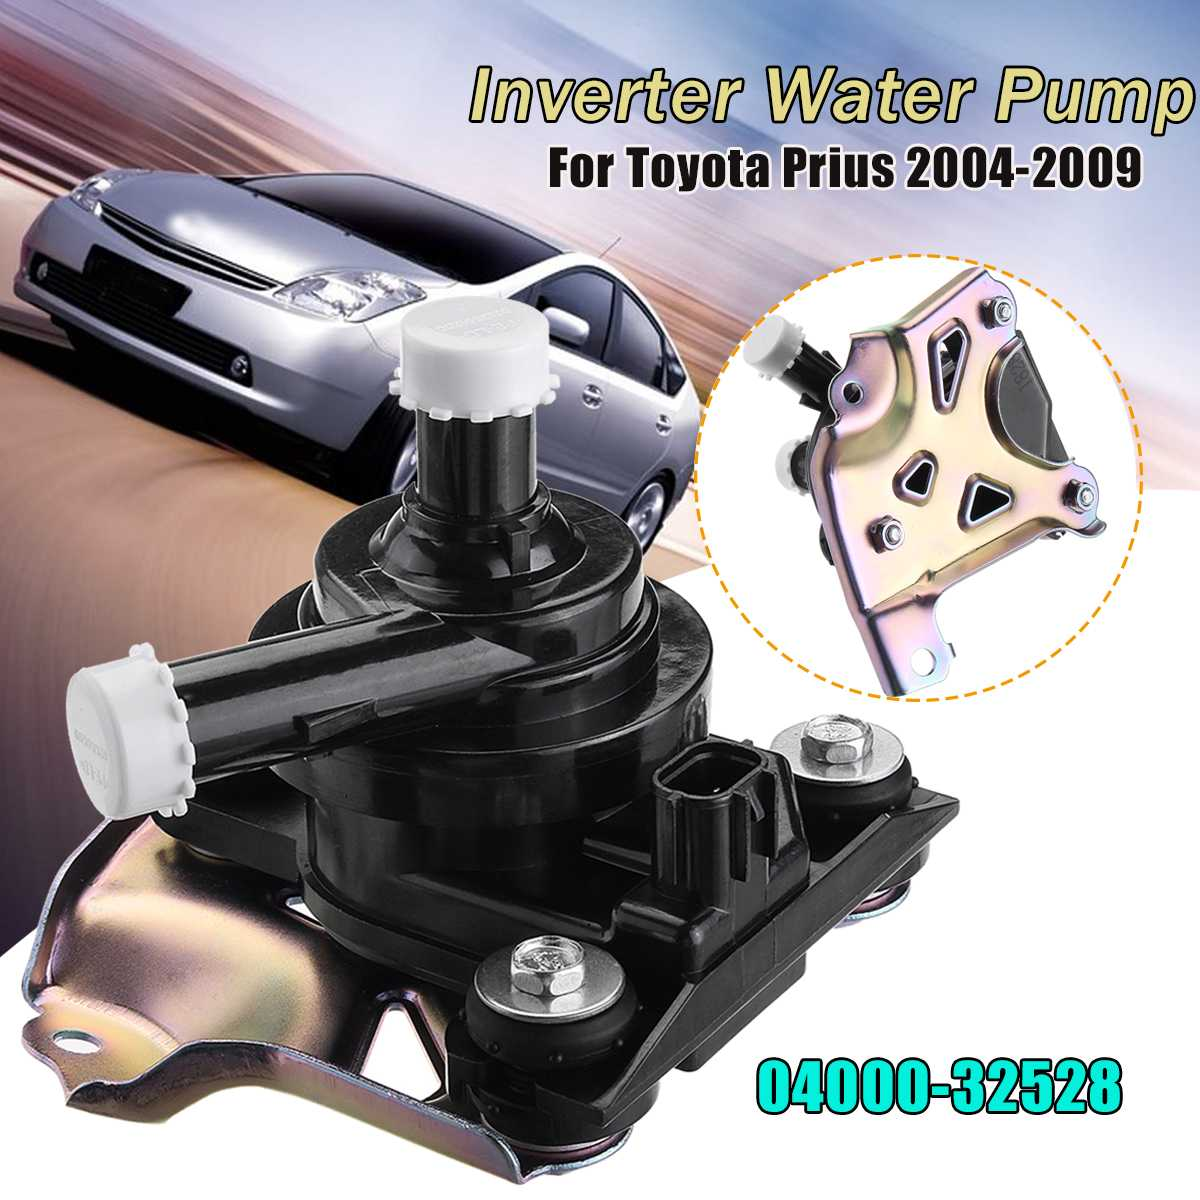 1PC 04000 32528 G902047031 Electric Inverter Water Pump For Toyota Prius 2004 2005 2006 2007 2008